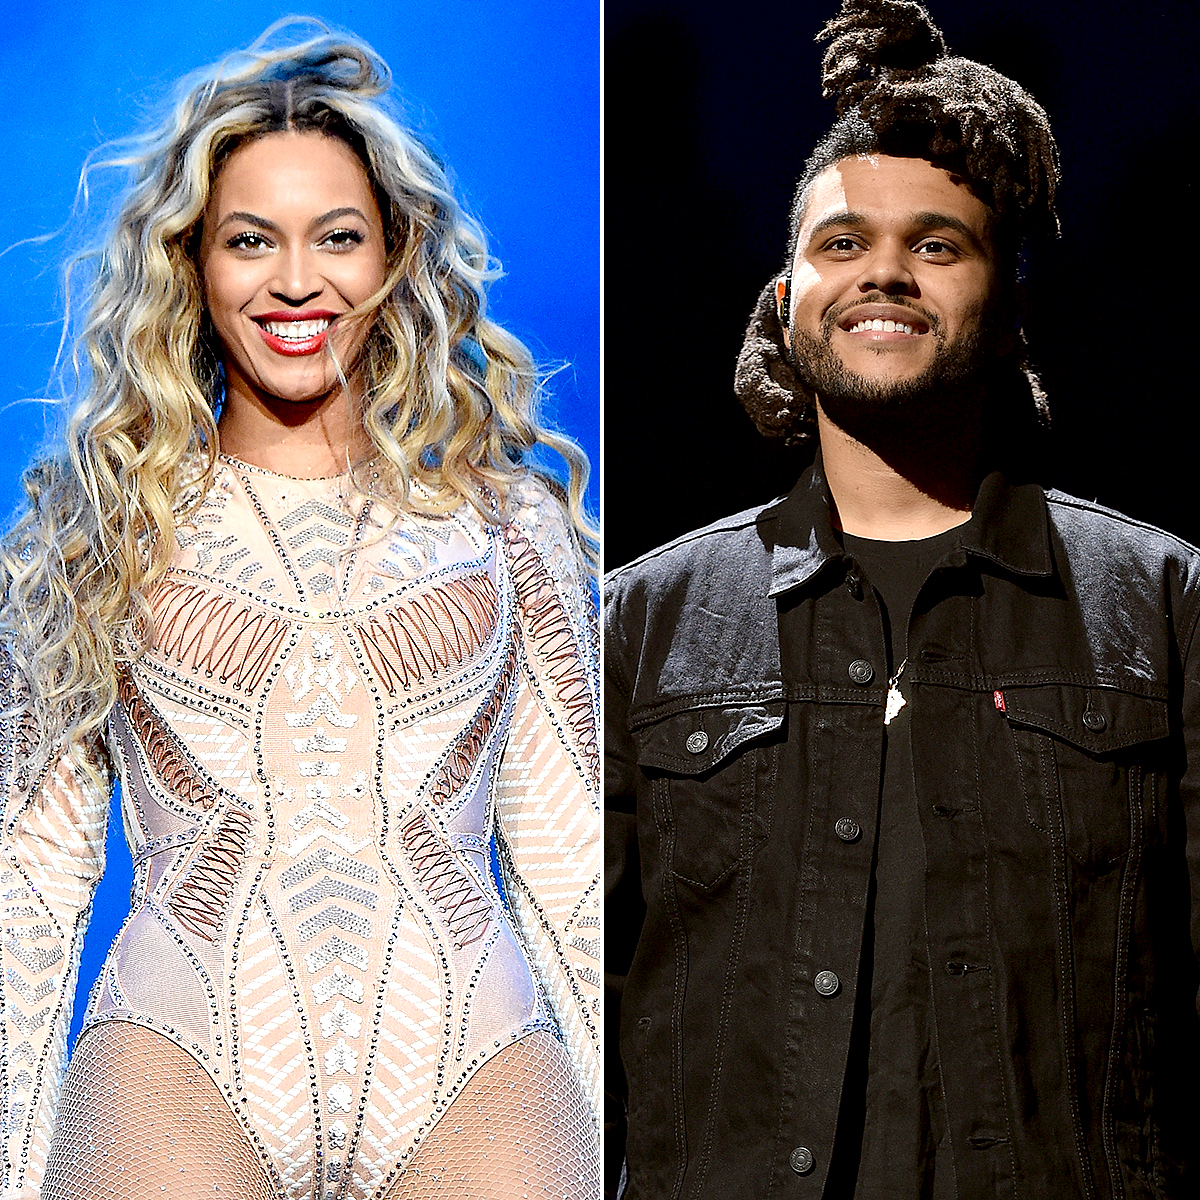 Beyoncé, Eminem and The Weeknd to Headline Coachella 2018